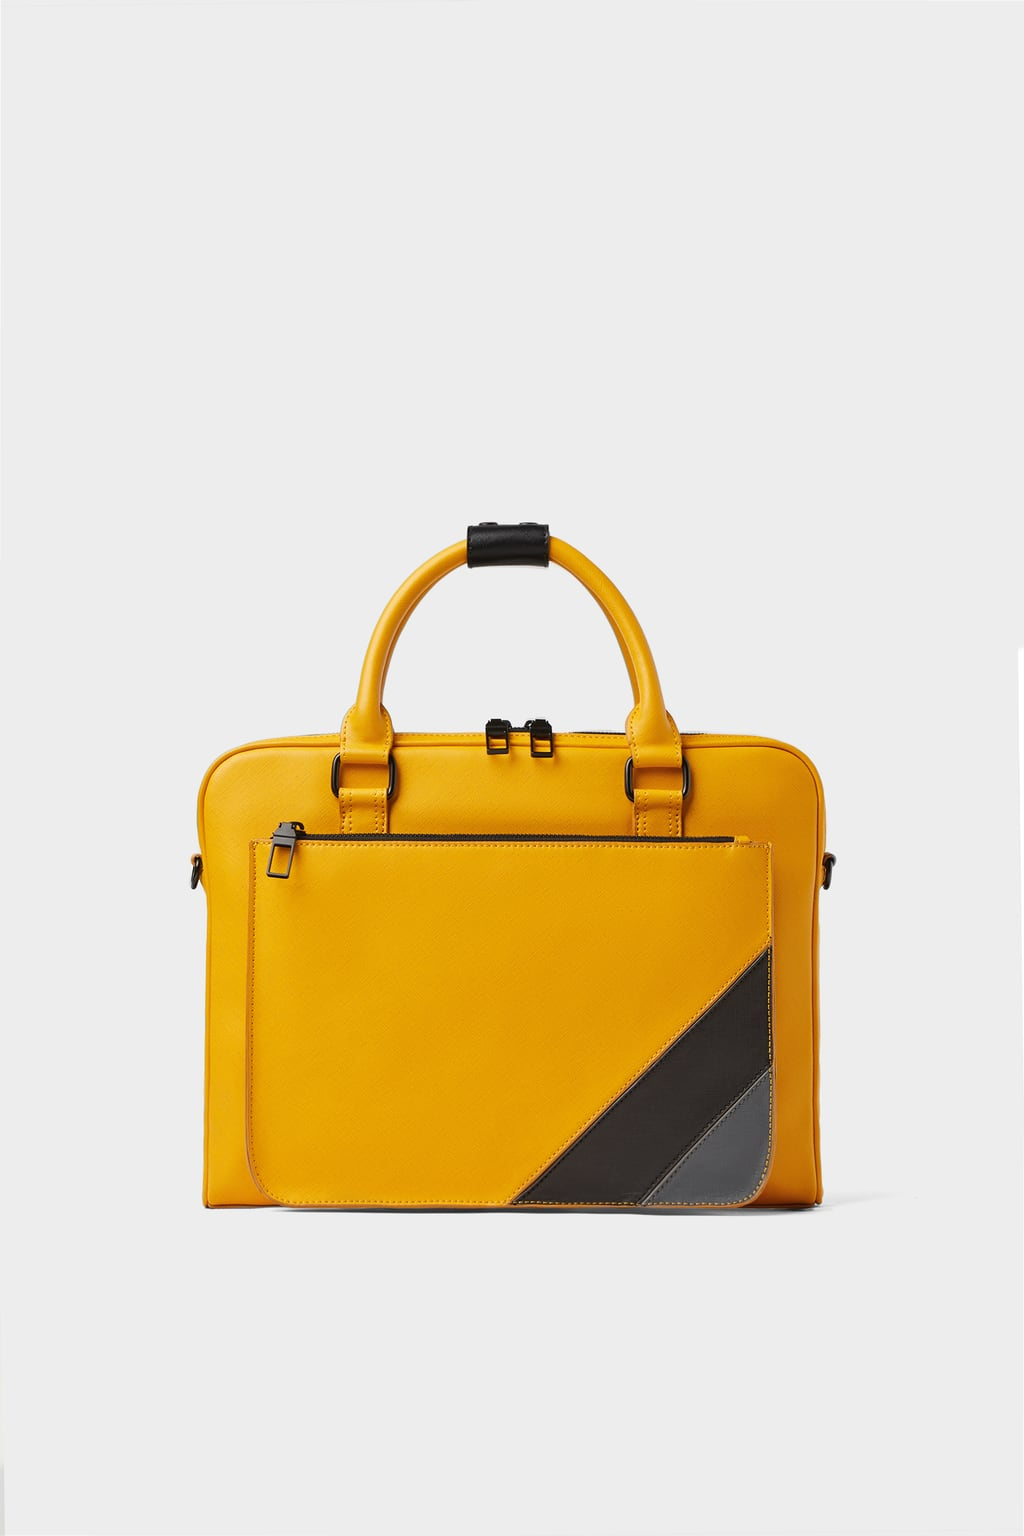 Zara Yellow Contrast Briefcase